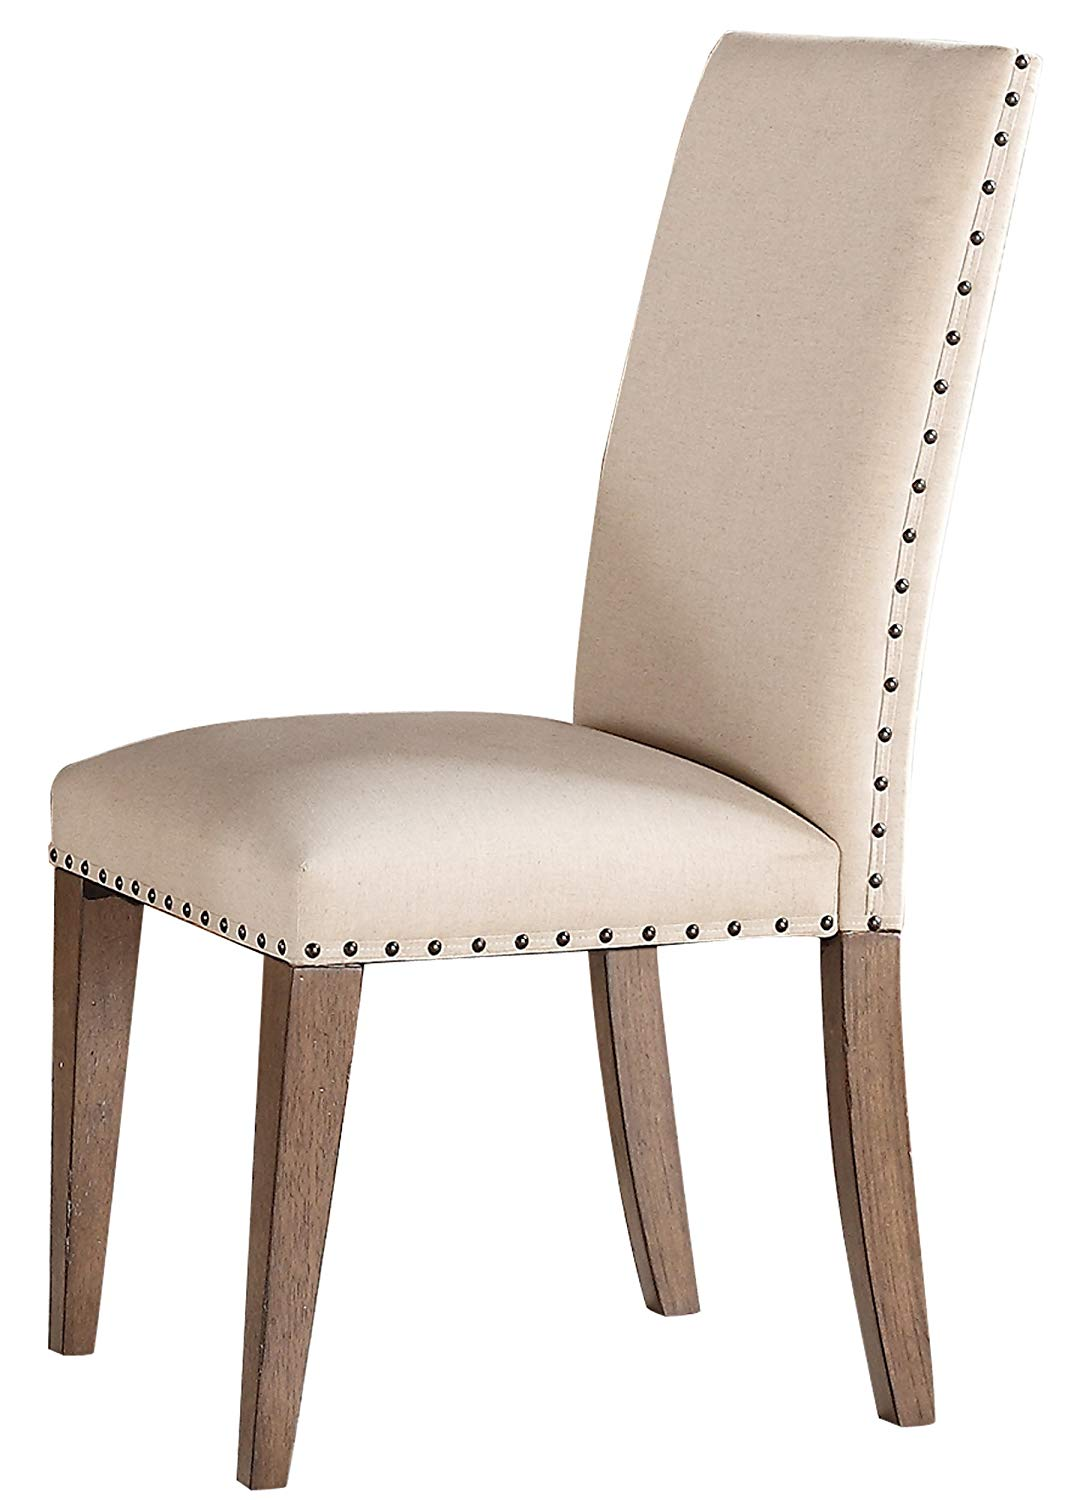 Homelegance Mill Valley Natural Wood Finish 2 Piece Dining Chair